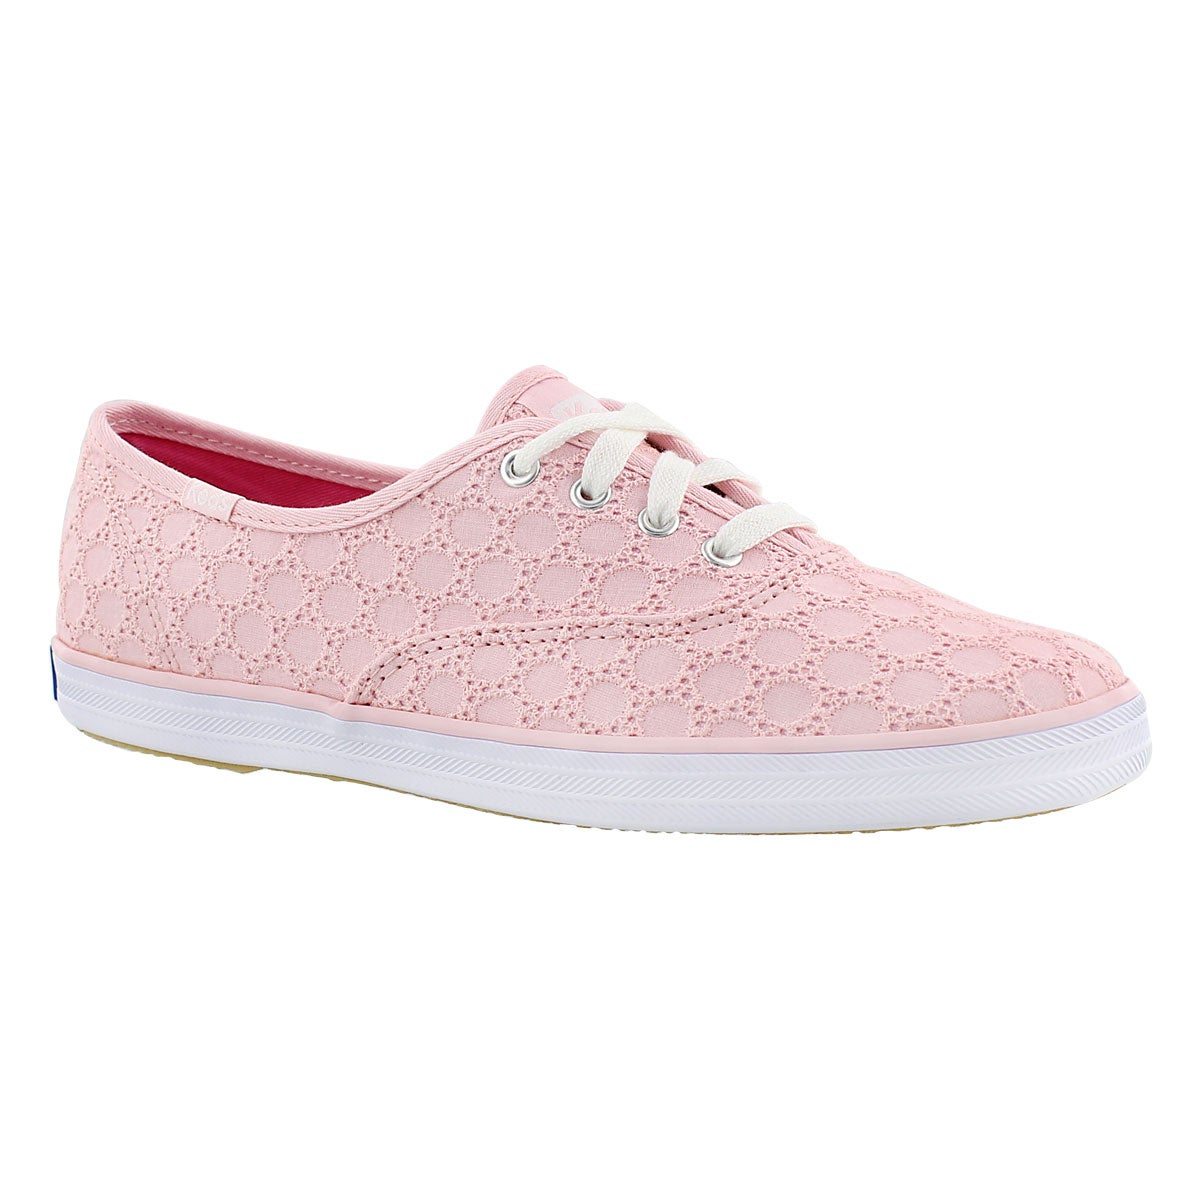 Lds Champion Eyelet light pink sneaker